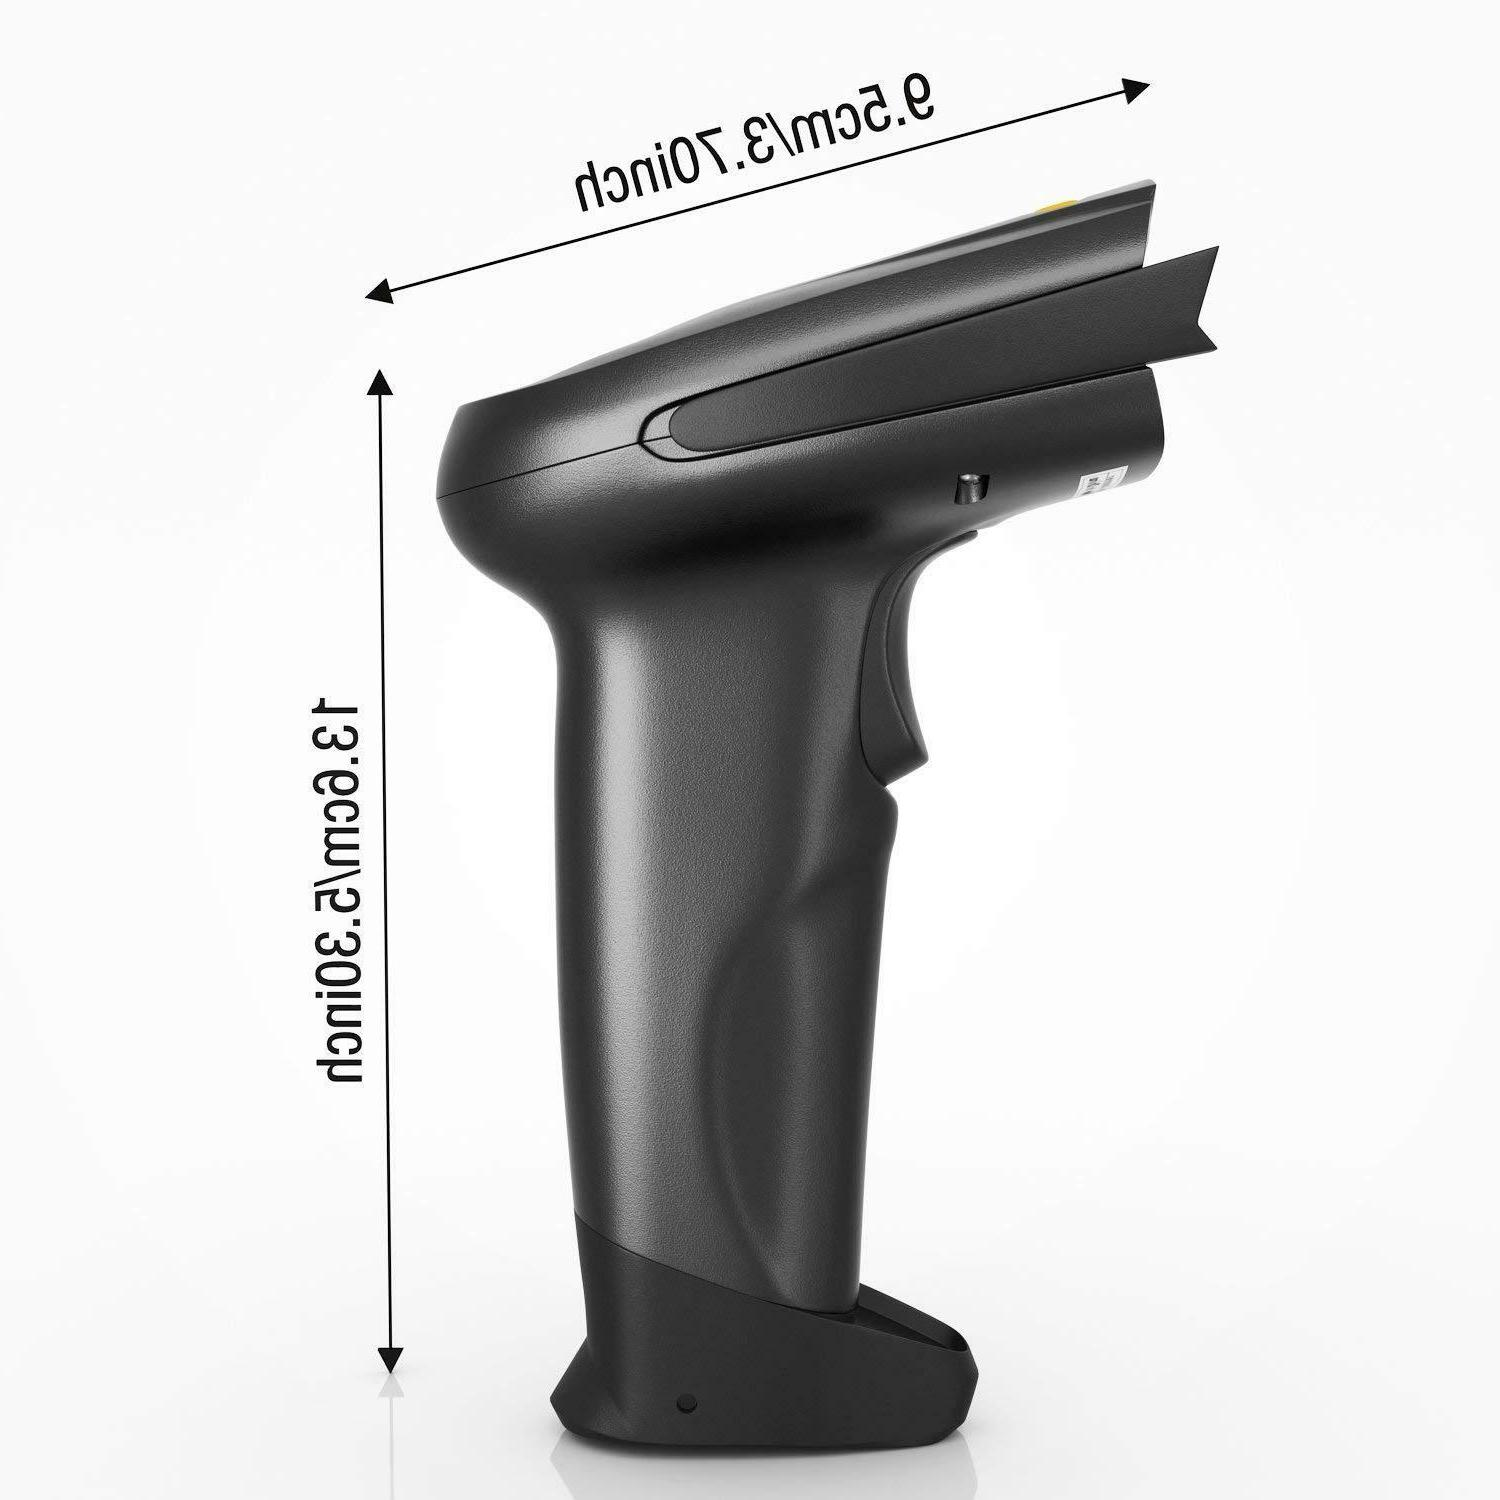 BRAND NEW! 2.4G Wireless Handheld Barcode Scanner